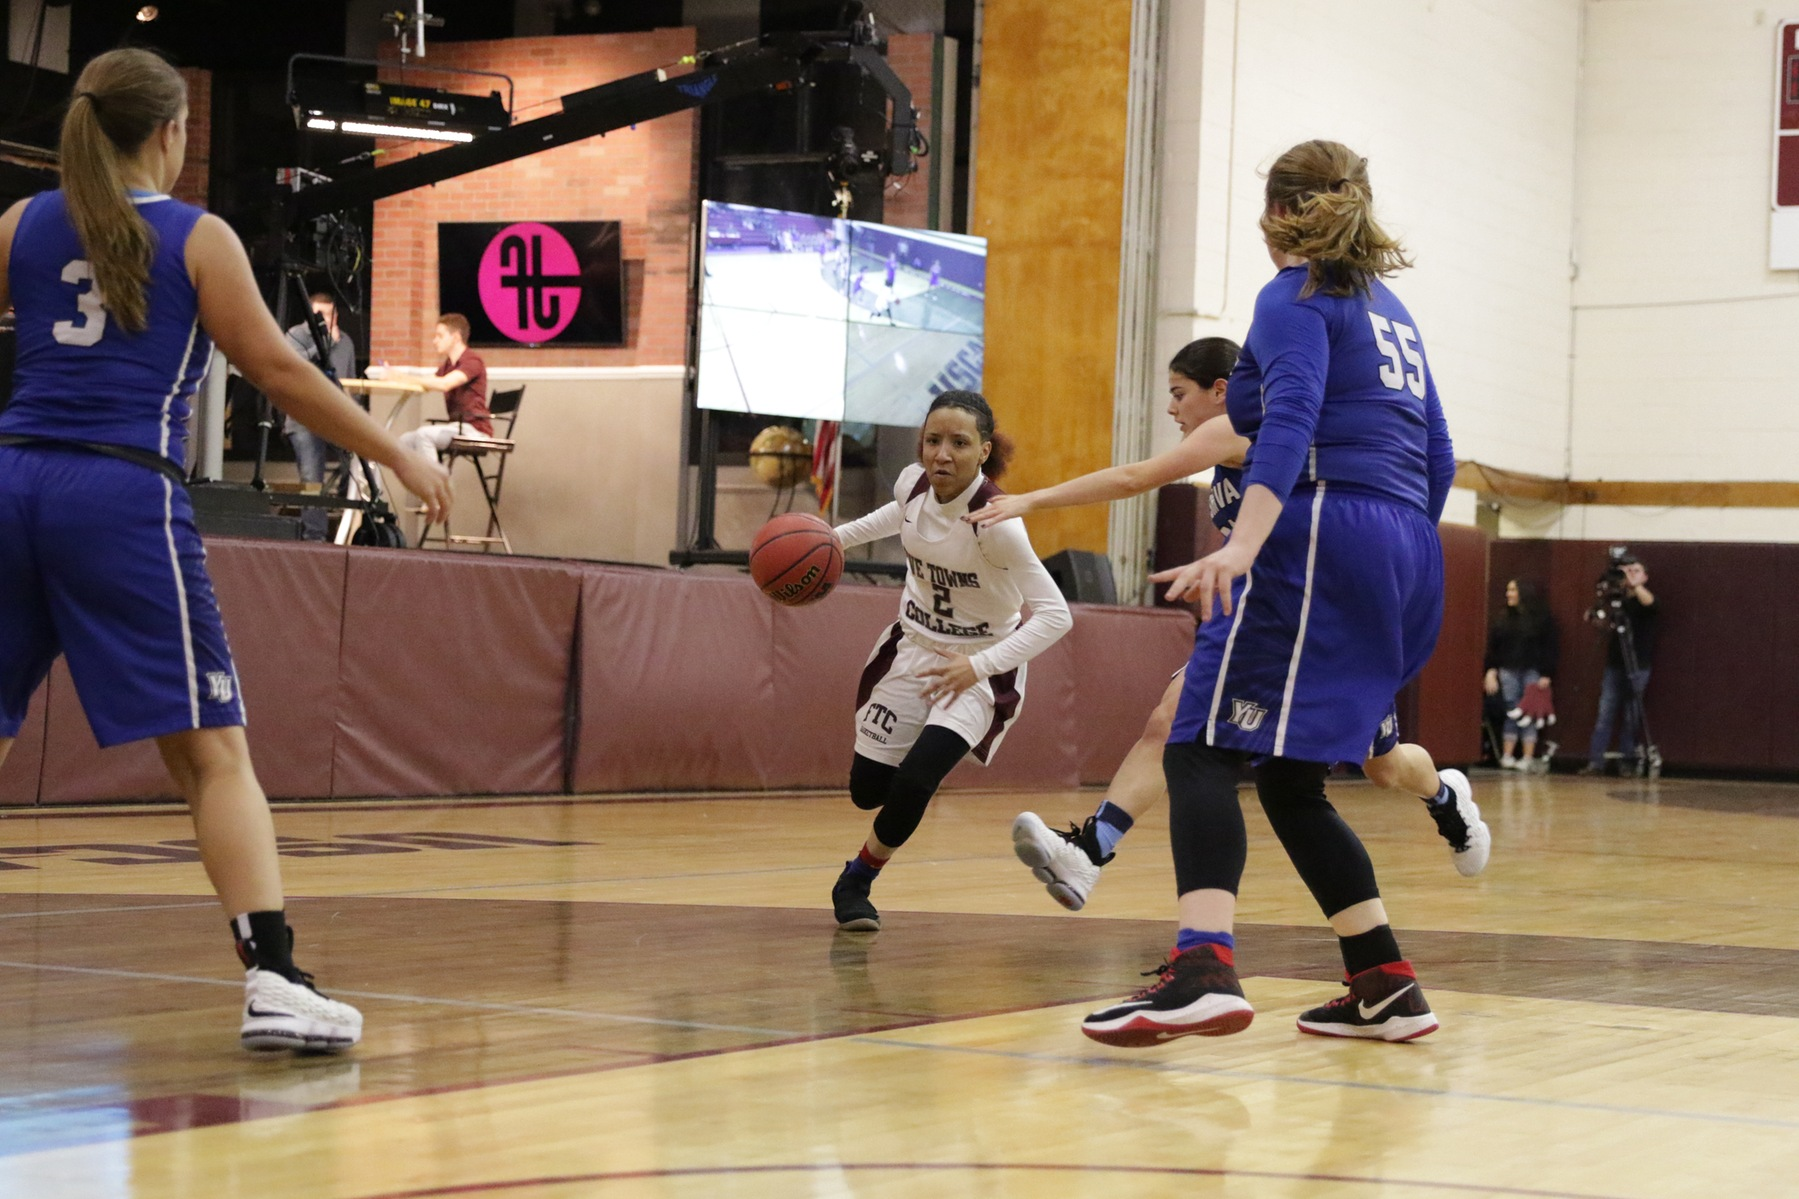 Women's Basketball Falls to Yeshiva 66-31